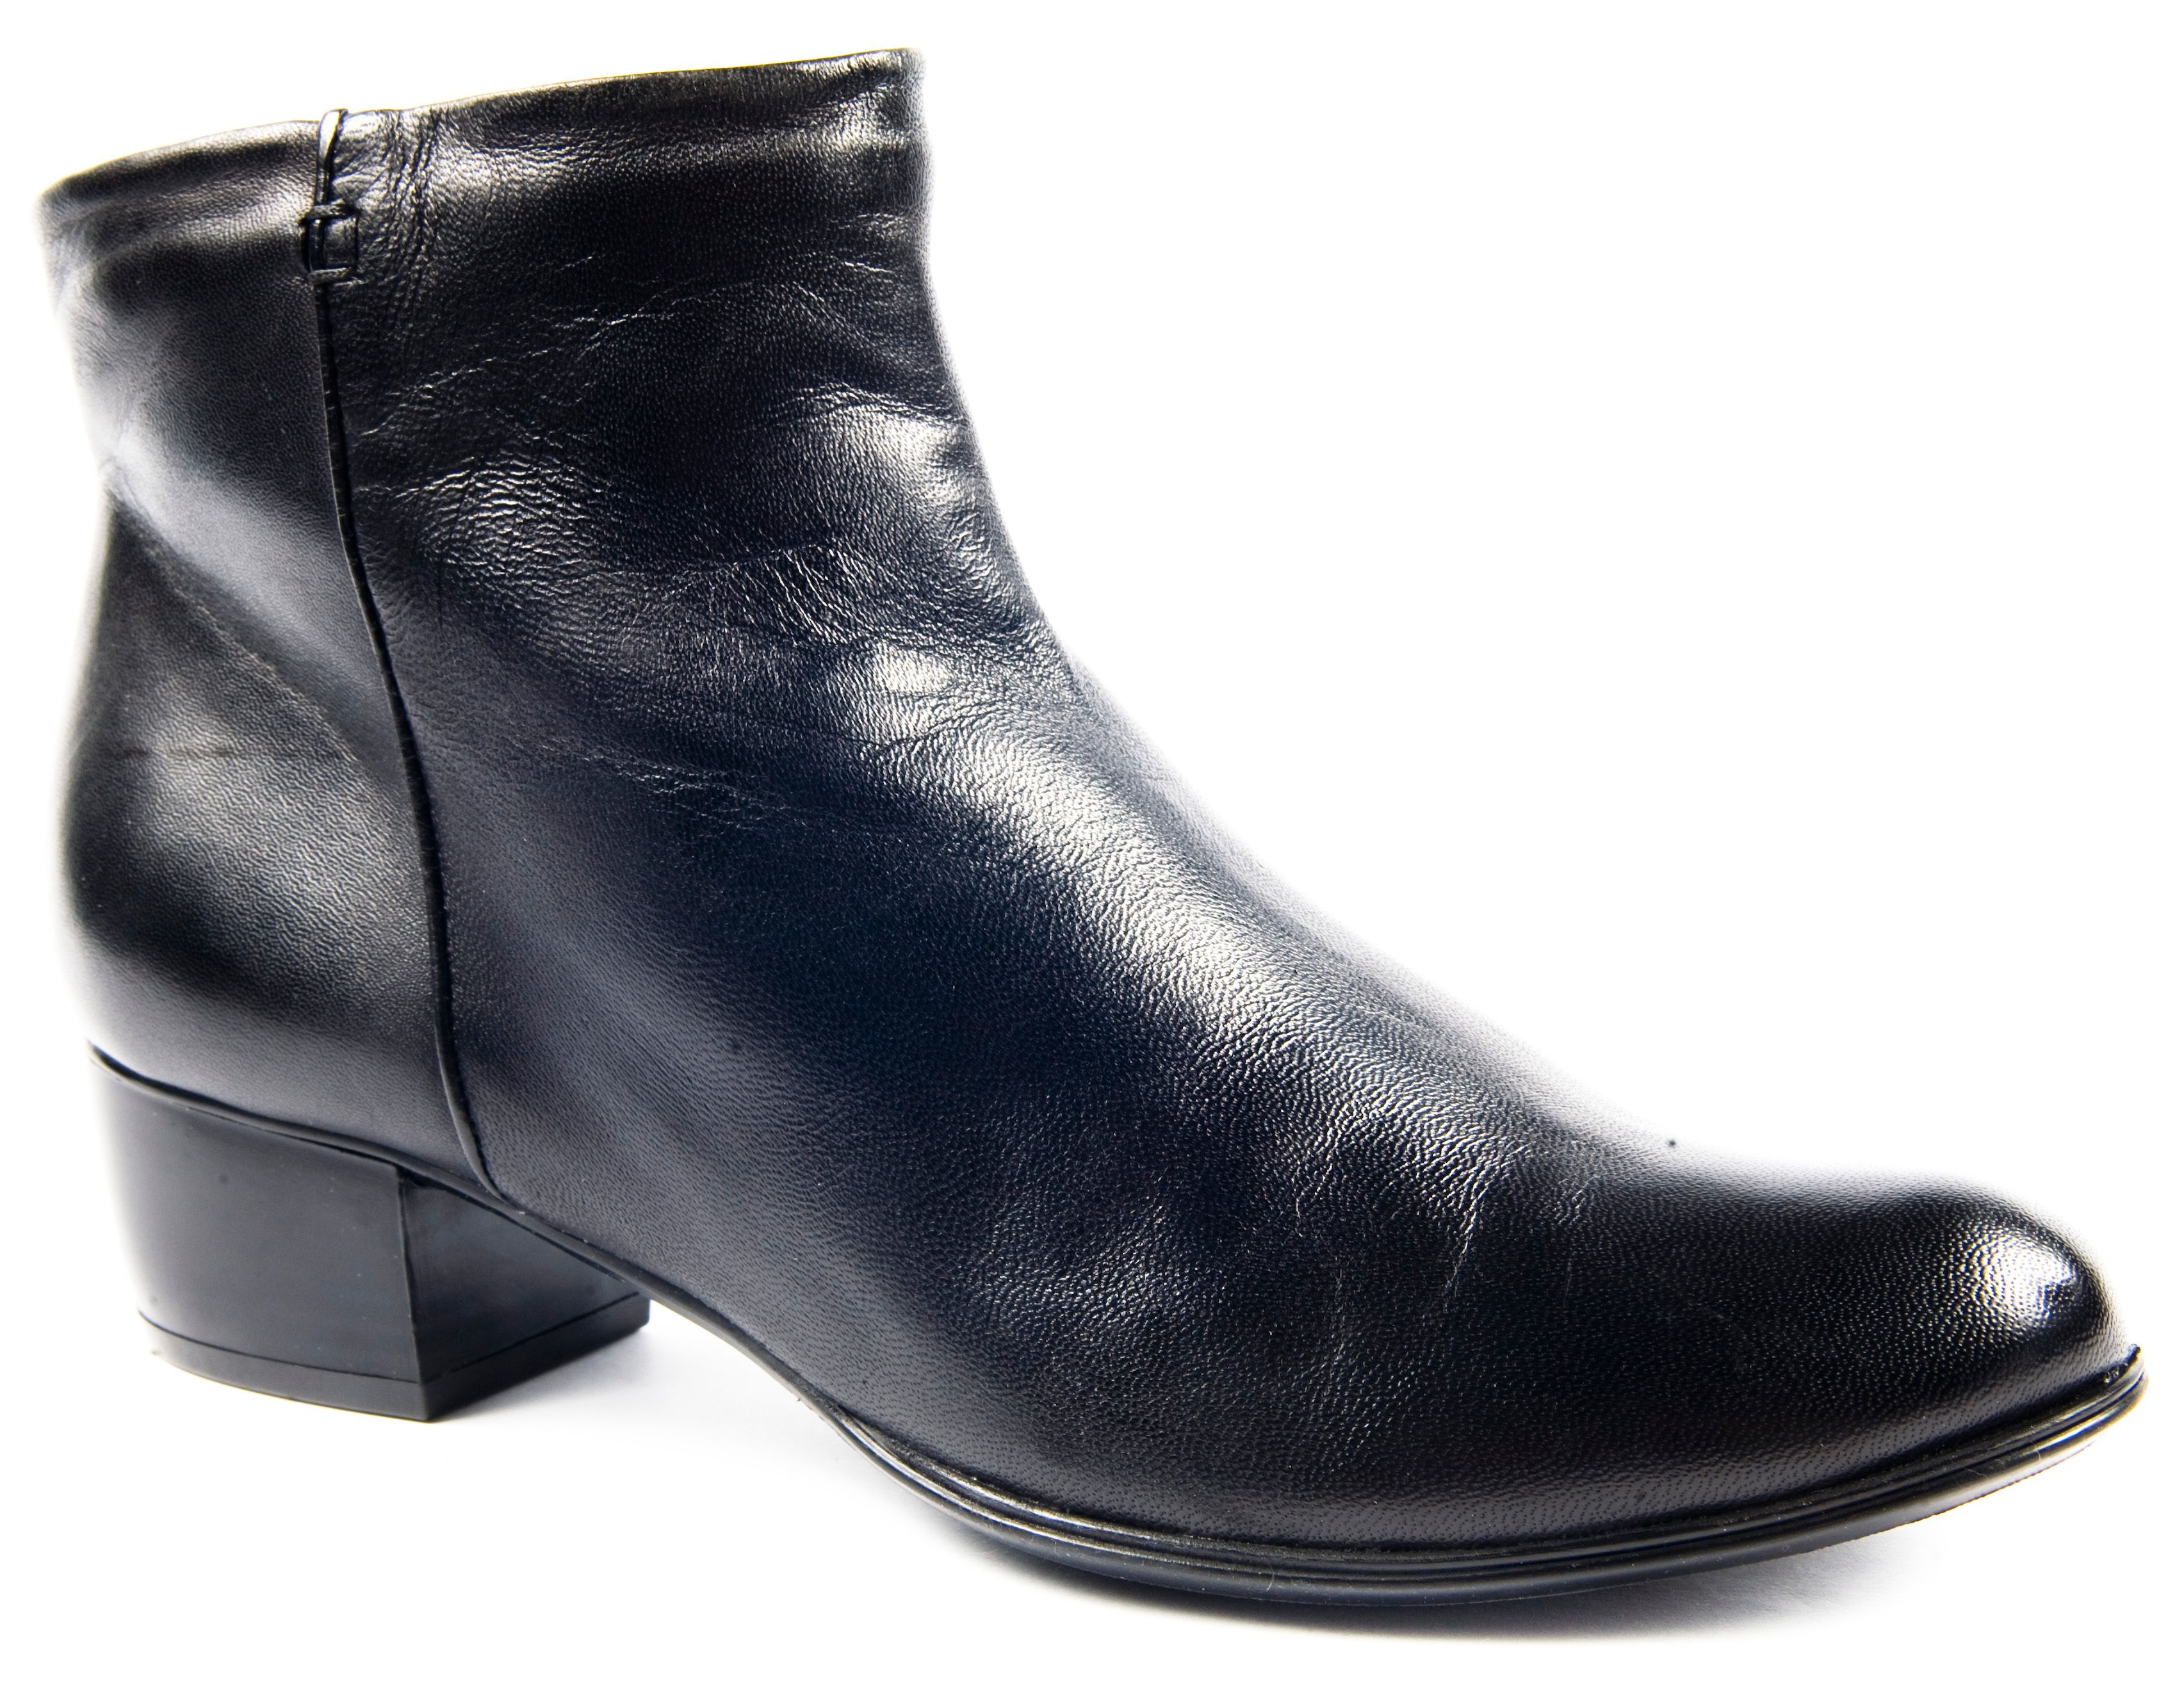 Lillian casual heeled boots